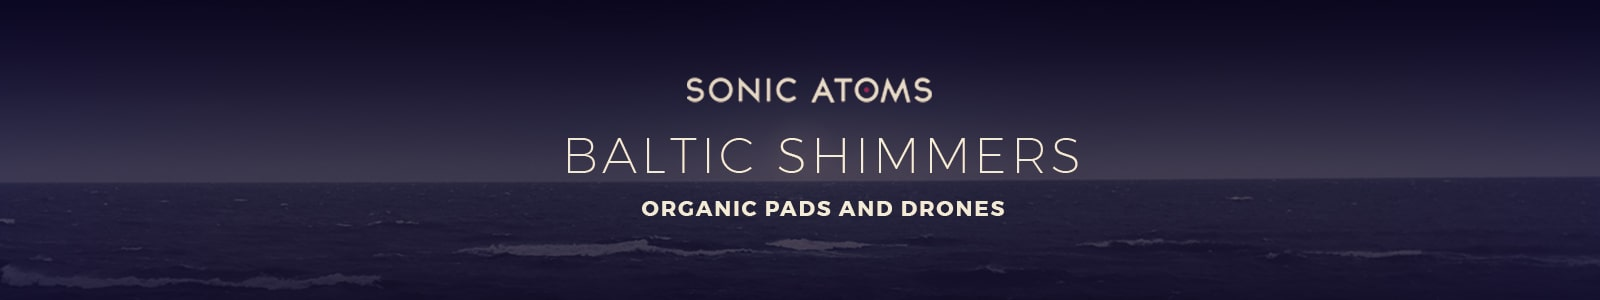 baltic shimmers